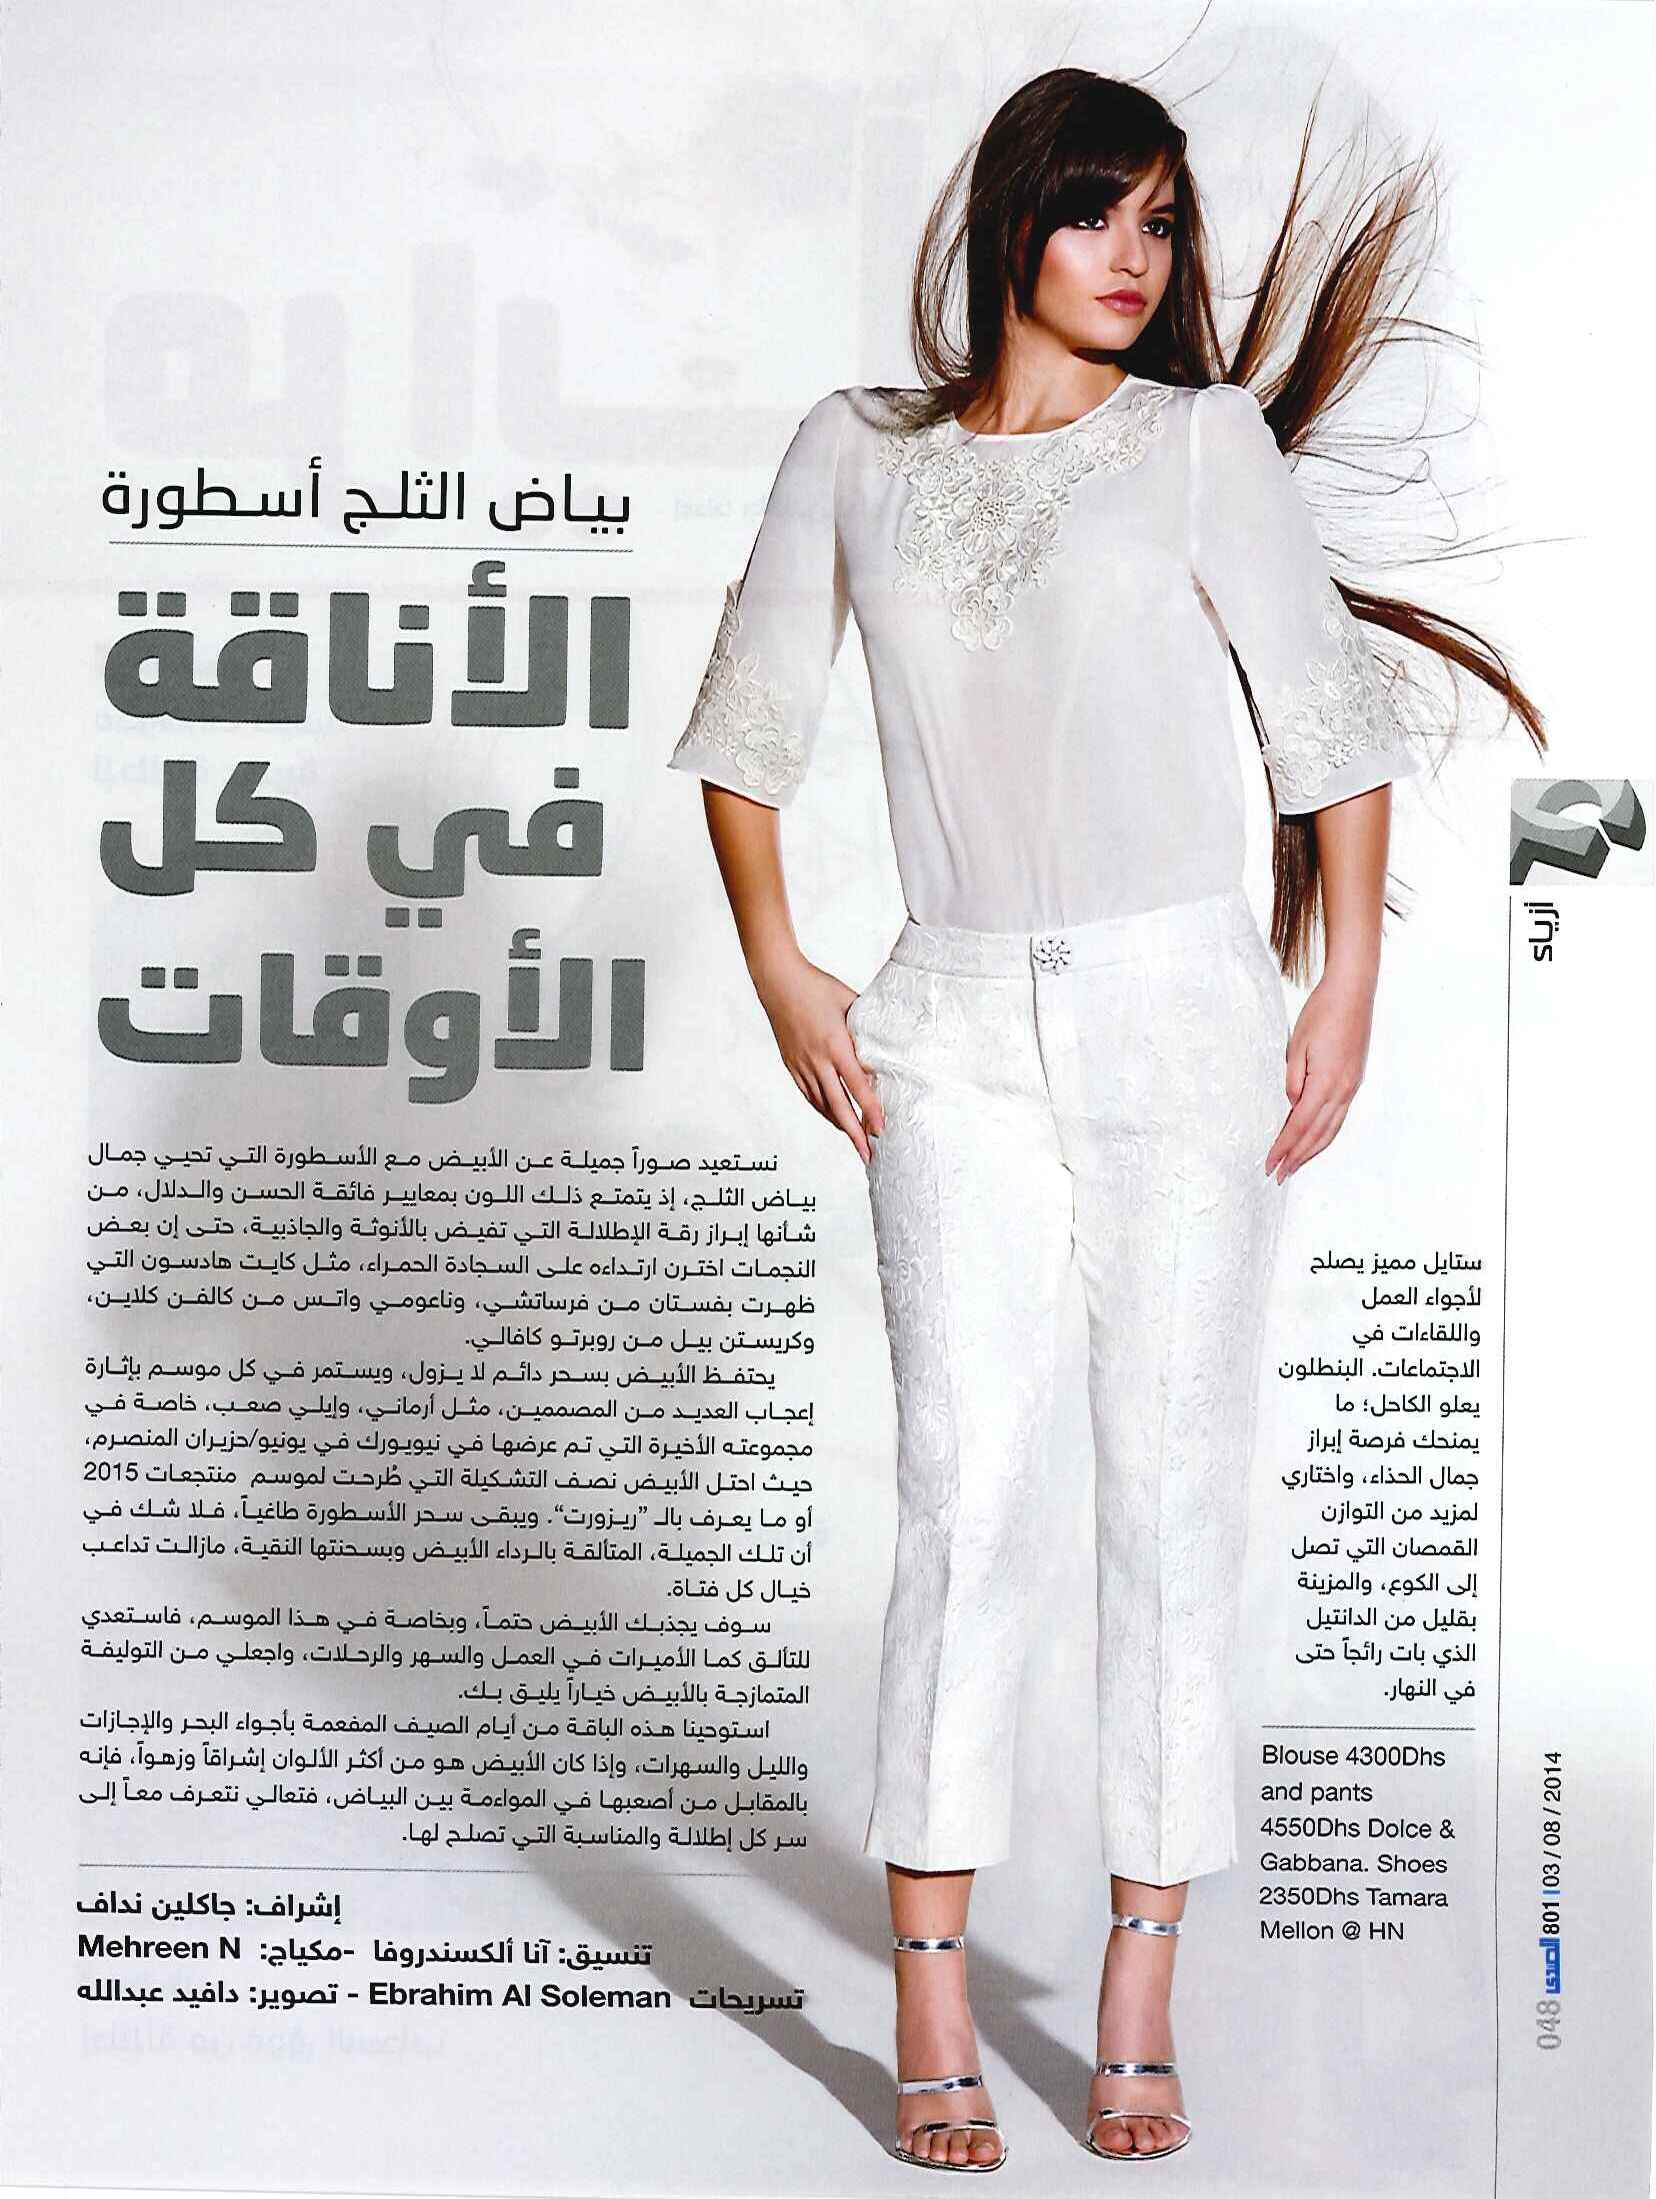 FLC Models & Talents - Catalogue Shoots - Al Sada - Lia